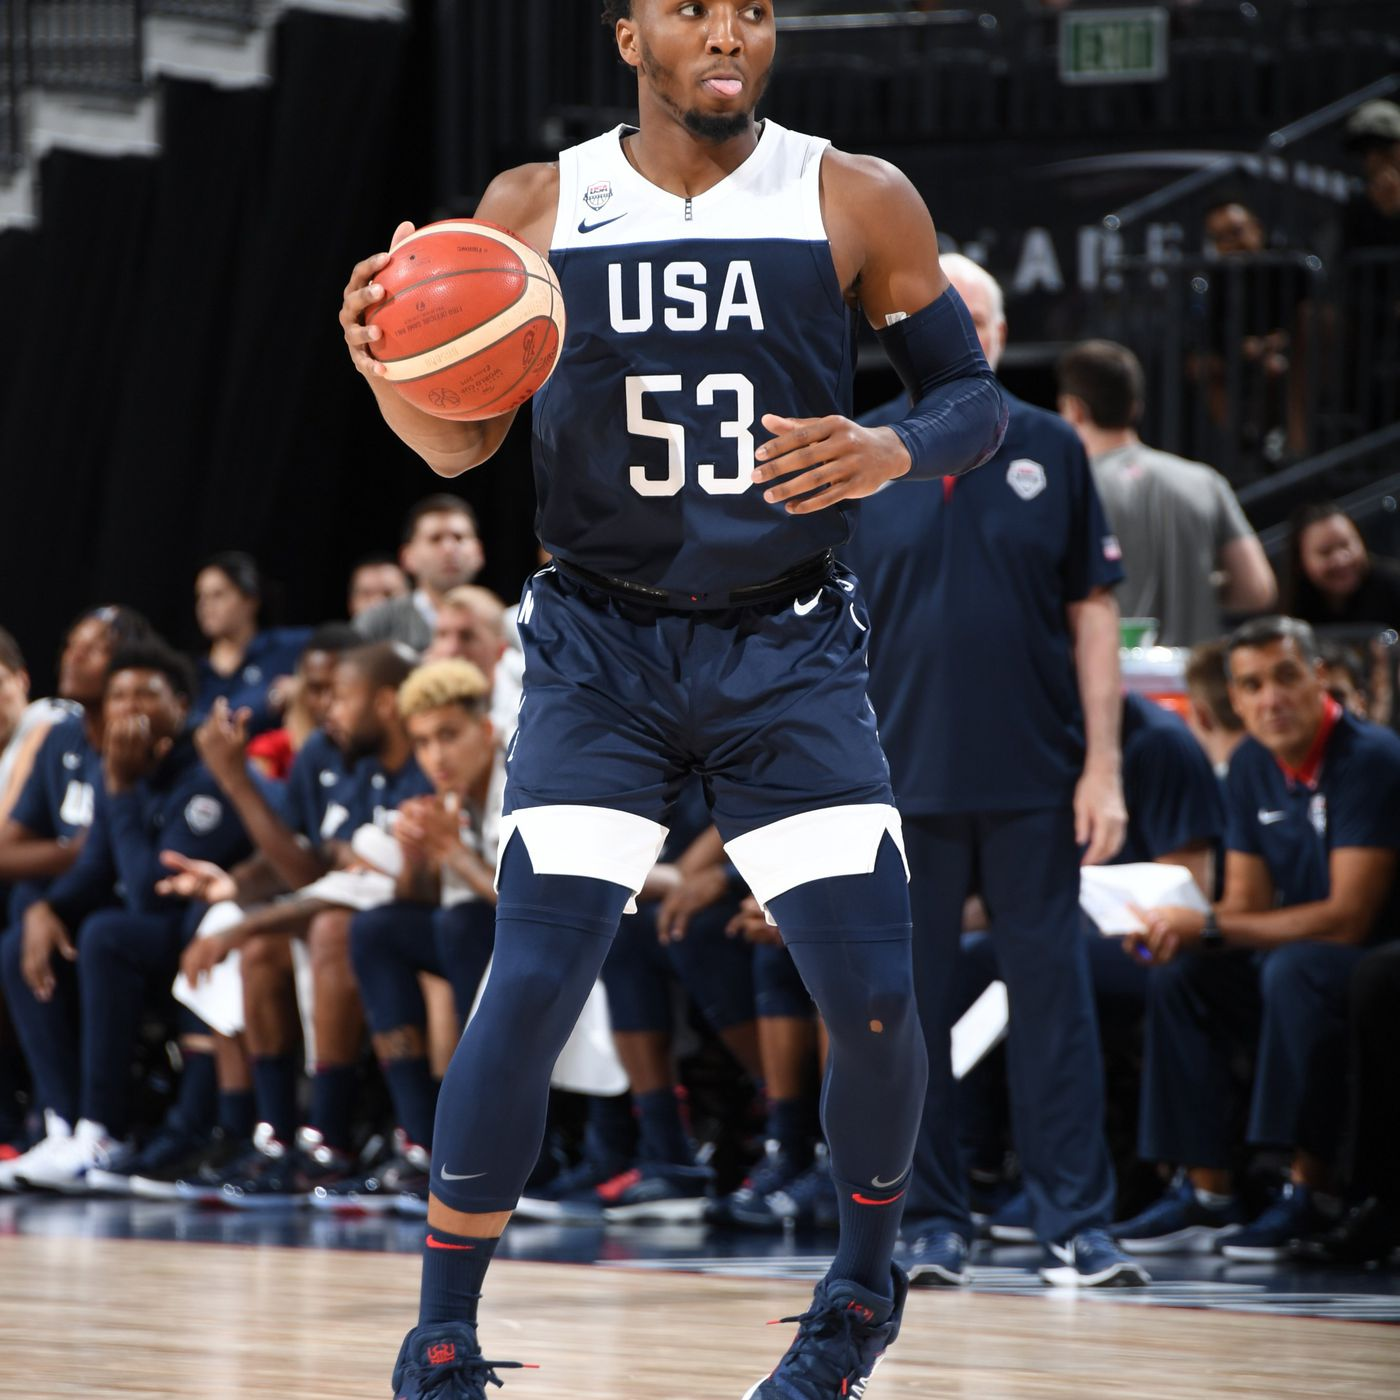 new product 116f9 12d31 Donovan Mitchell, Team USA Blue cruise in scrimmage - SLC Dunk